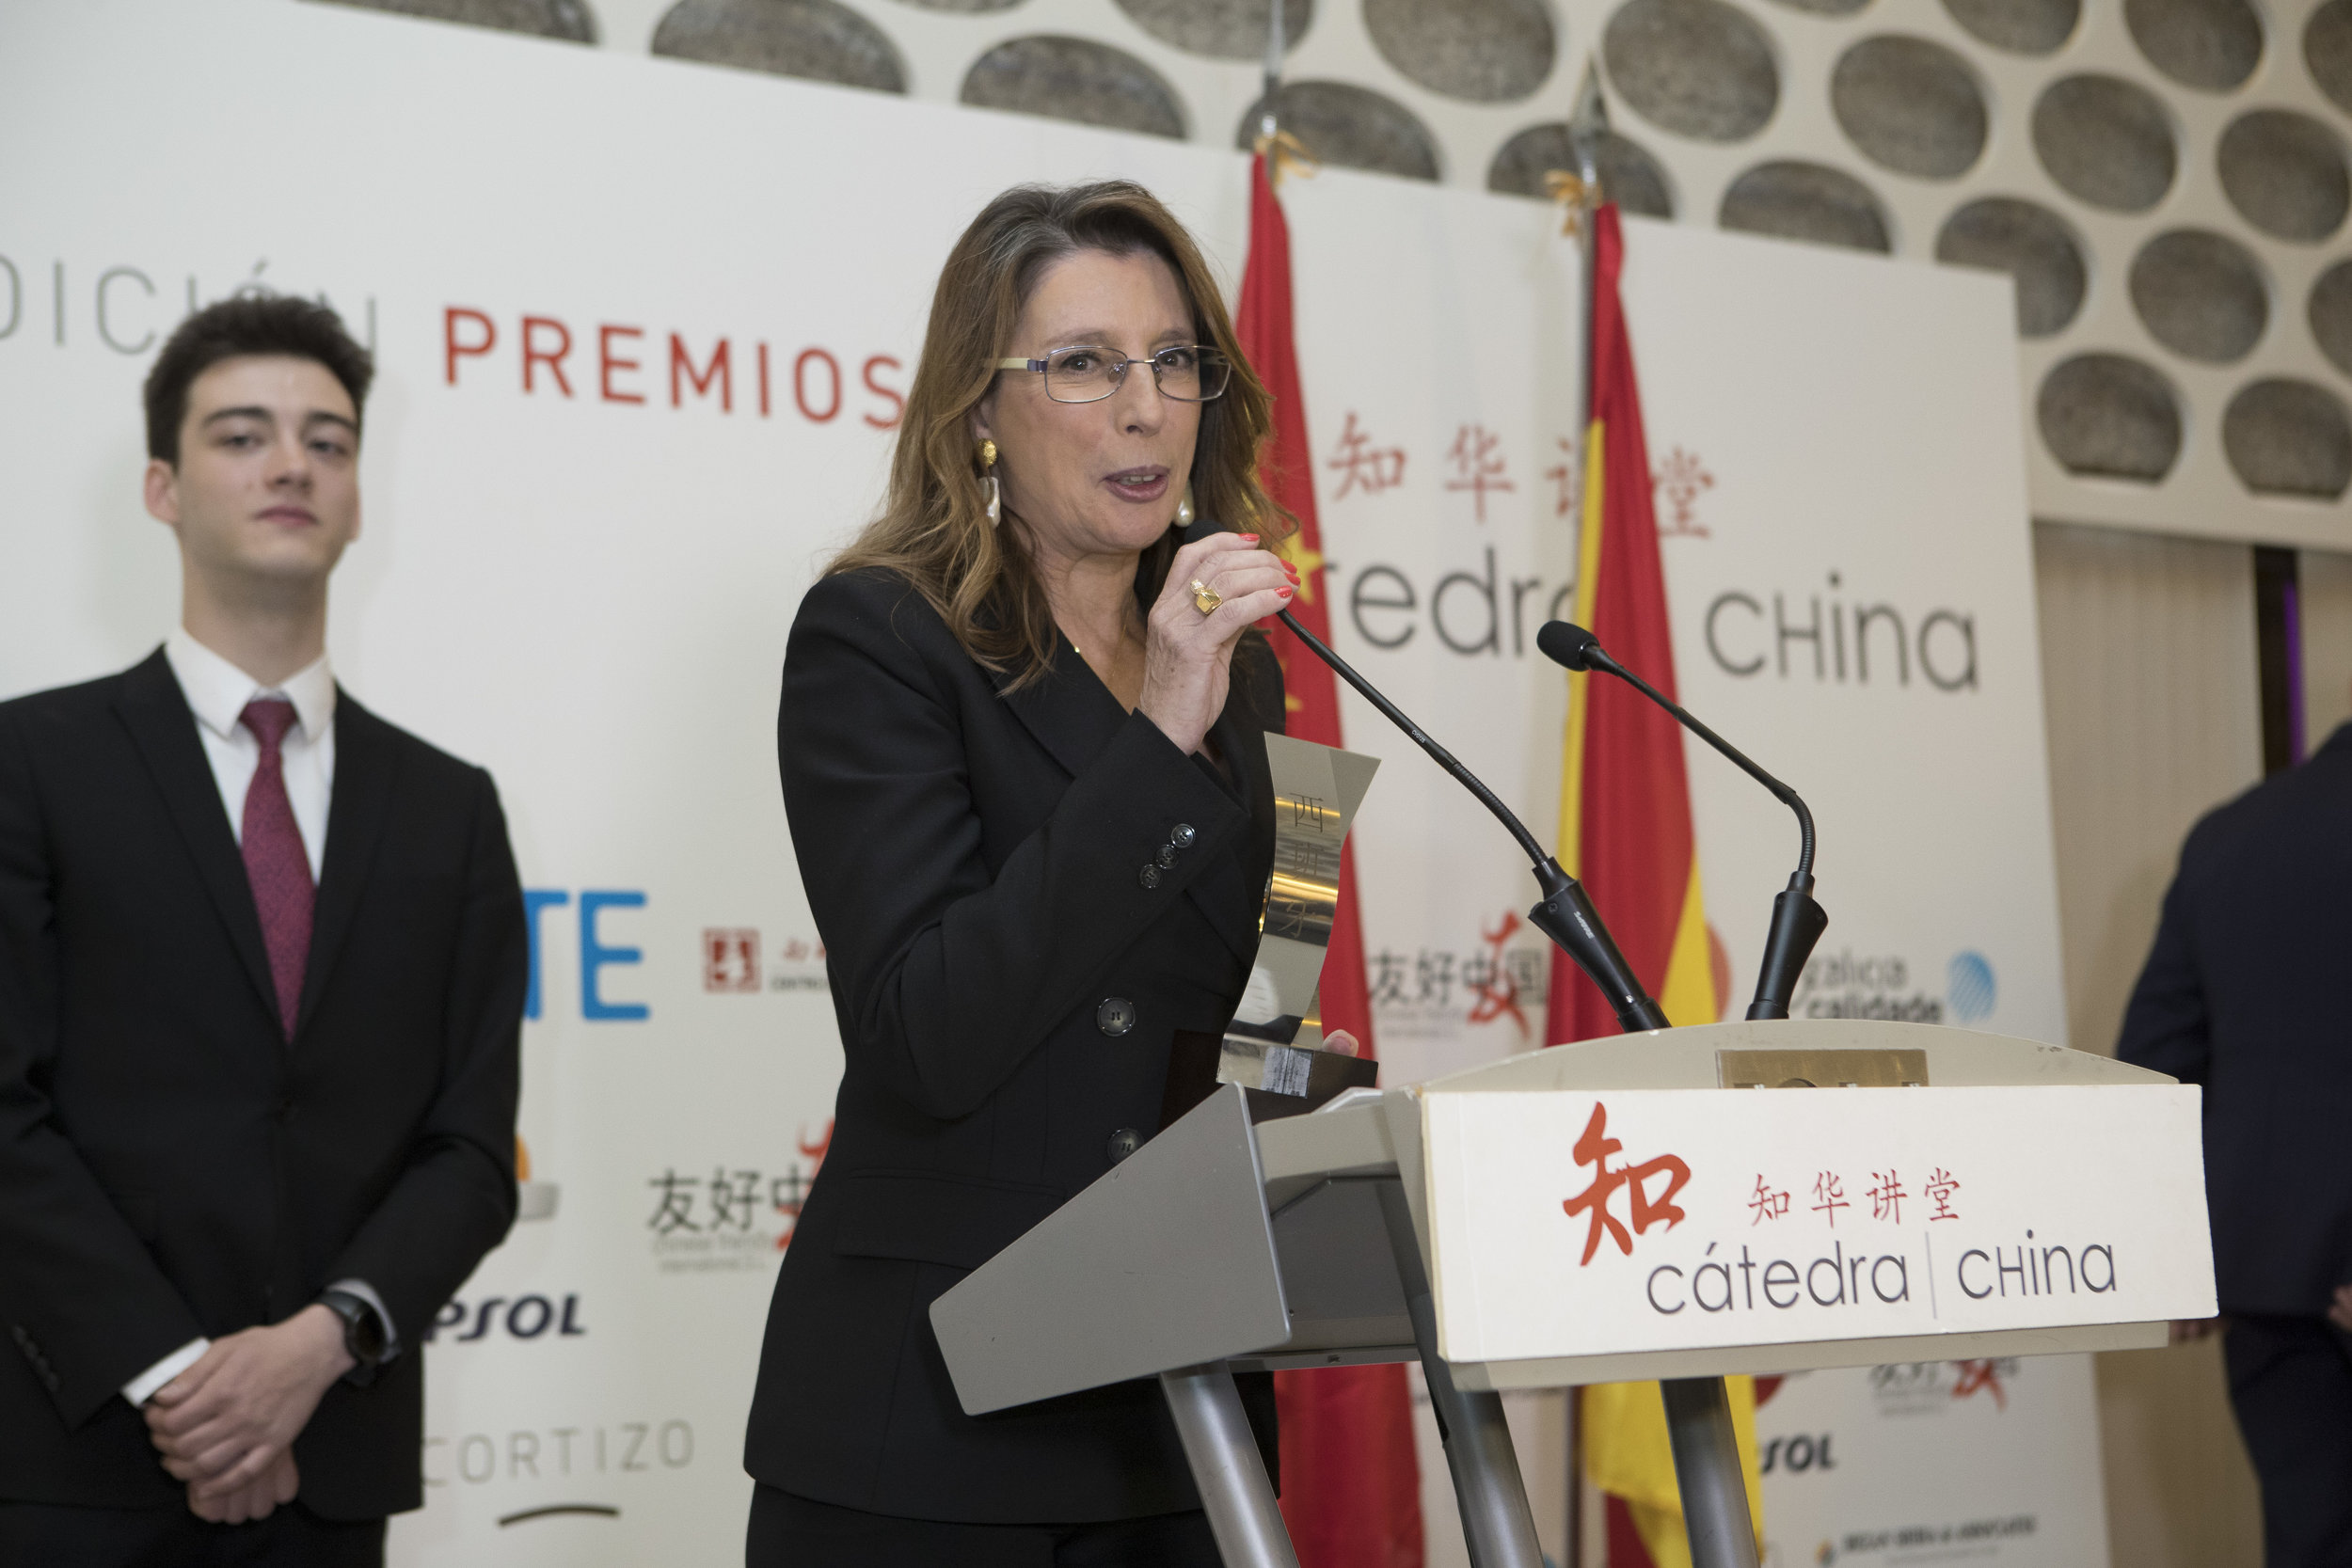 Paloma Sanchez speaking at Catedra China Gala